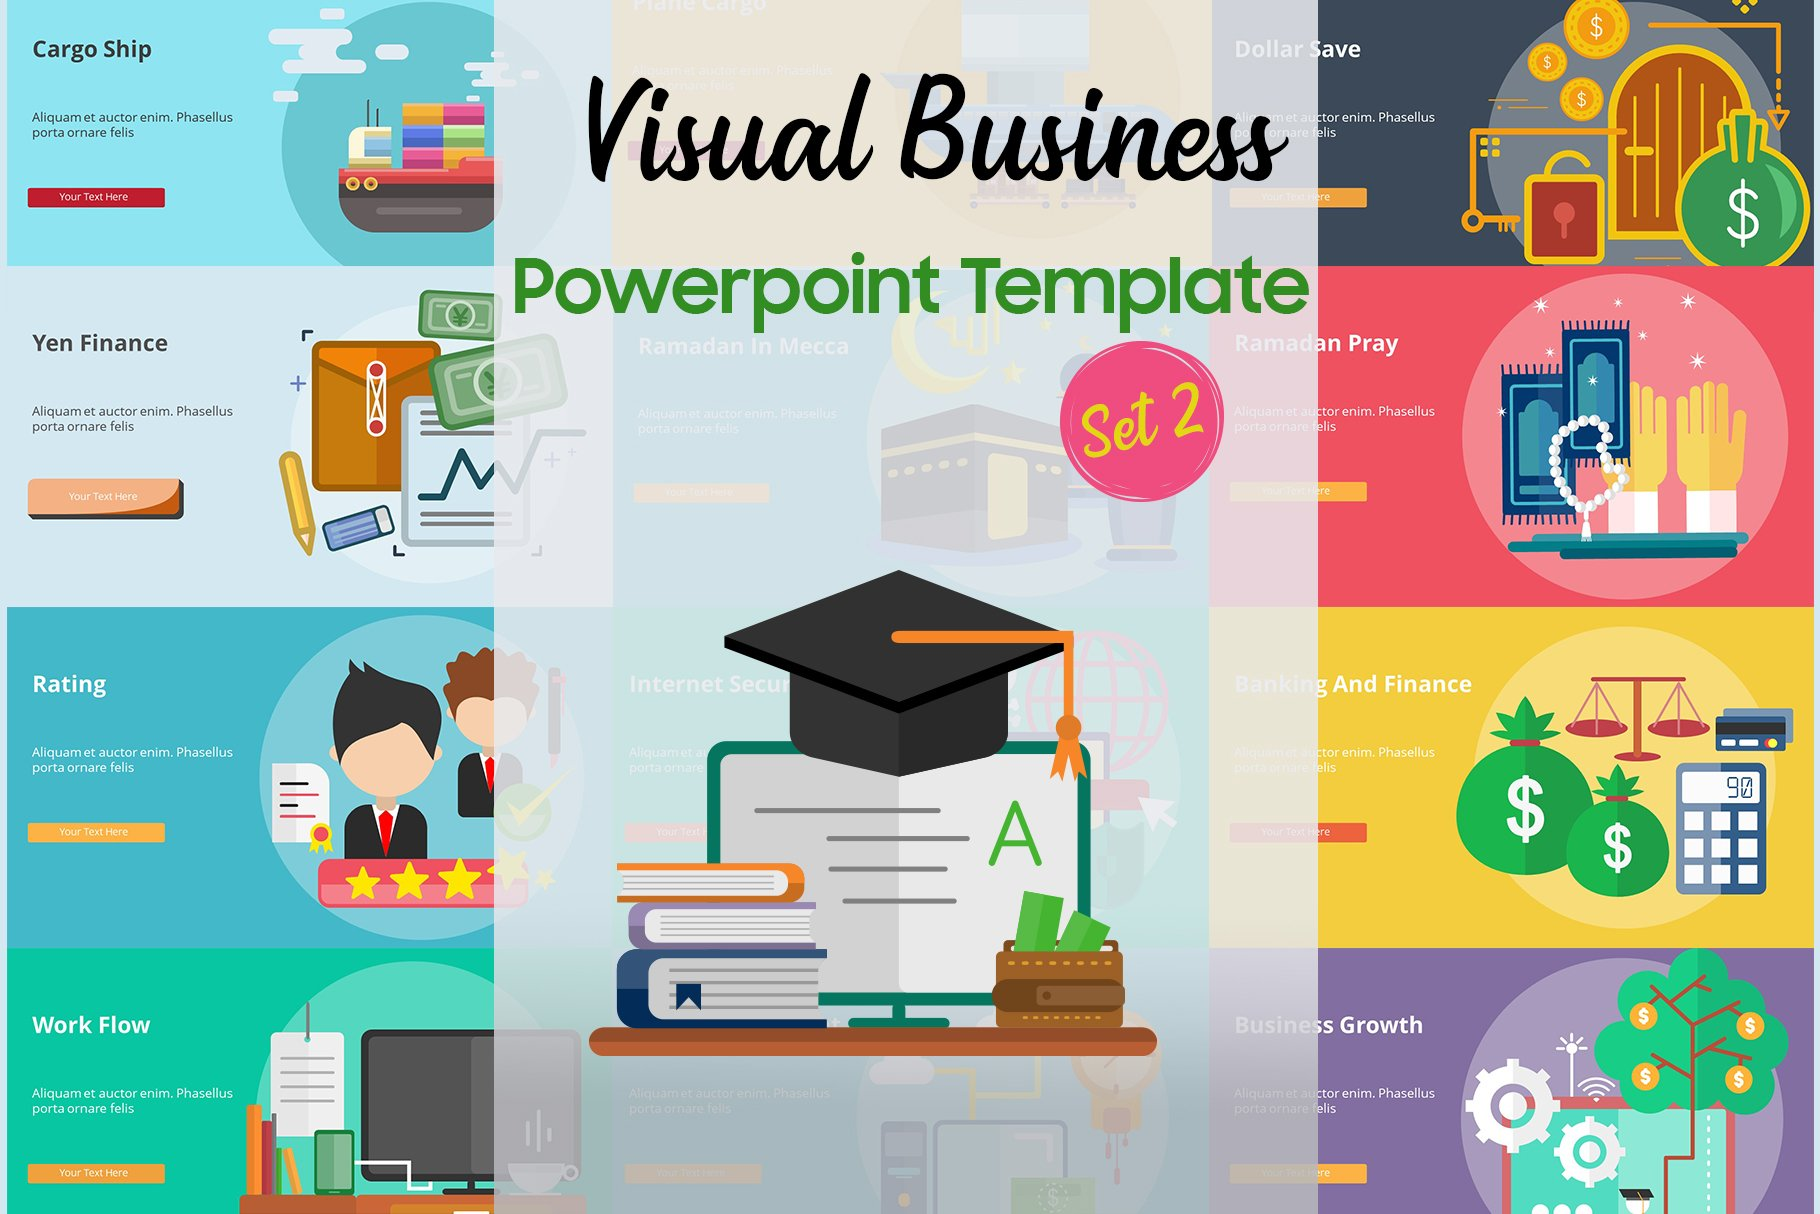 Visual Business PowerPoint Template (Set 2)